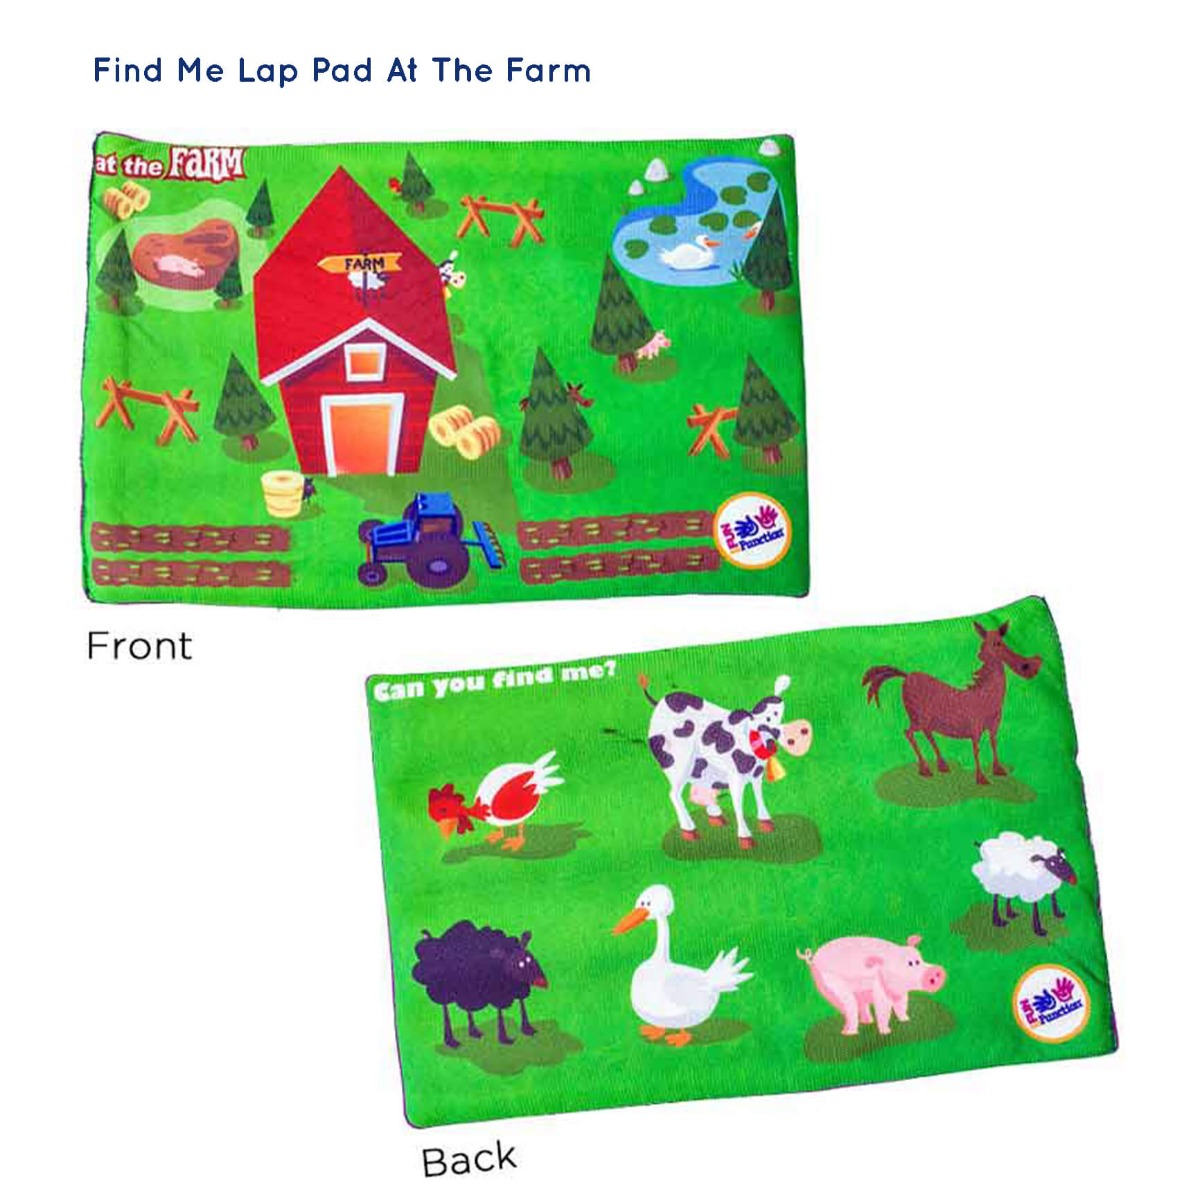 Sensory Holiday Gift Guide 2017 - Find Me Lap Pad